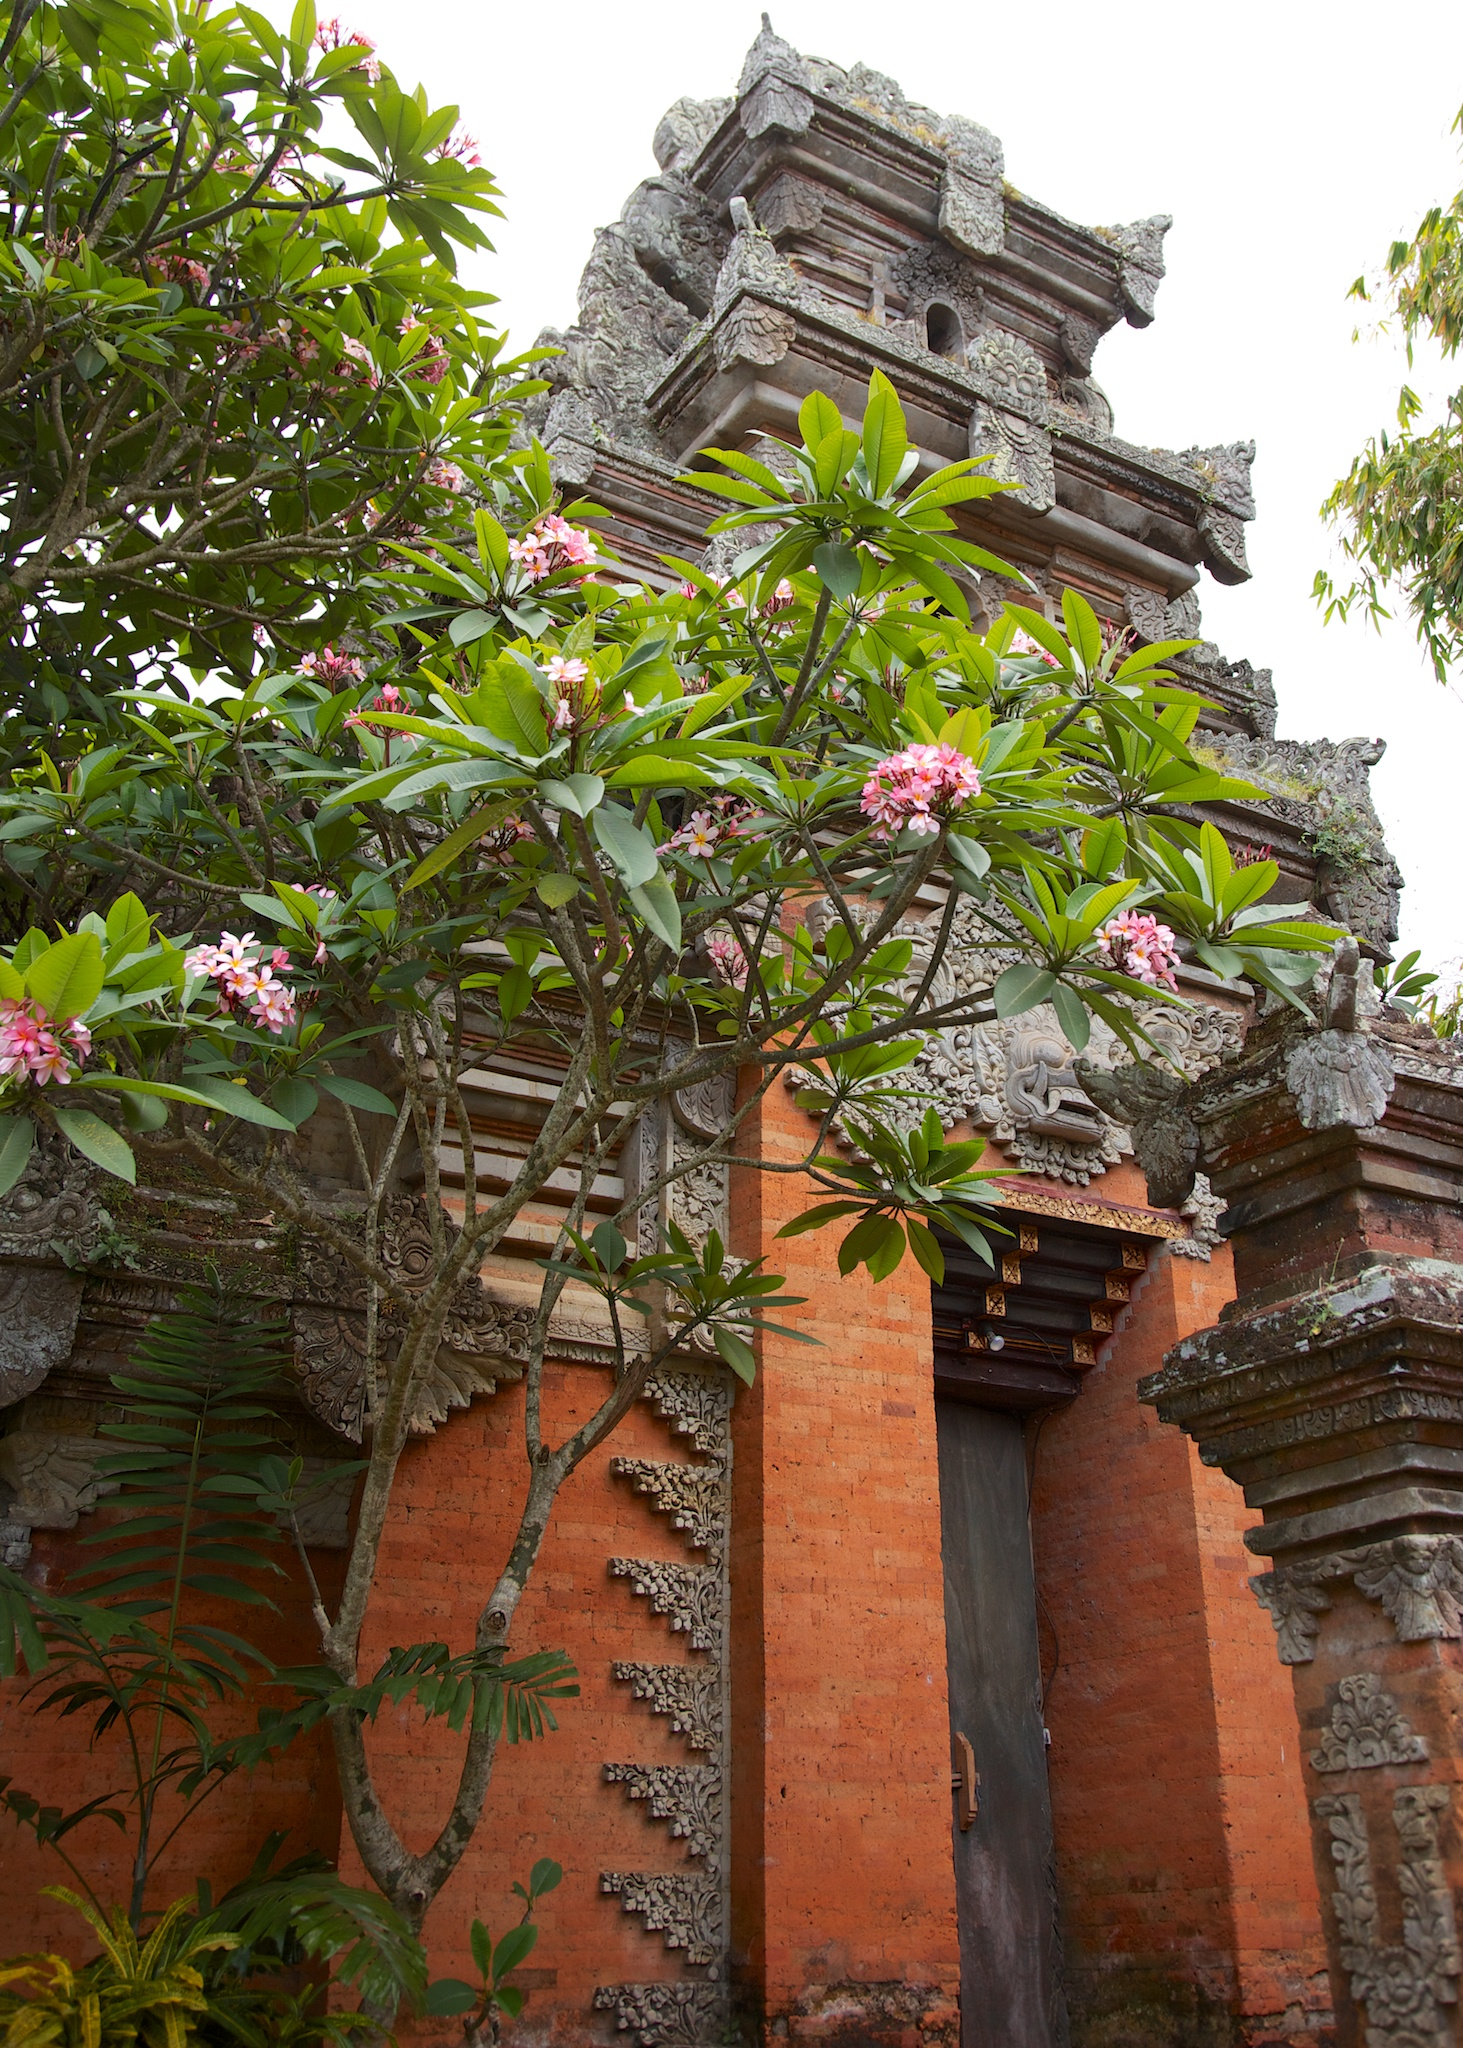 The temples around Bali are very cool. I don't think that most of them are very old, but they are very ornate.